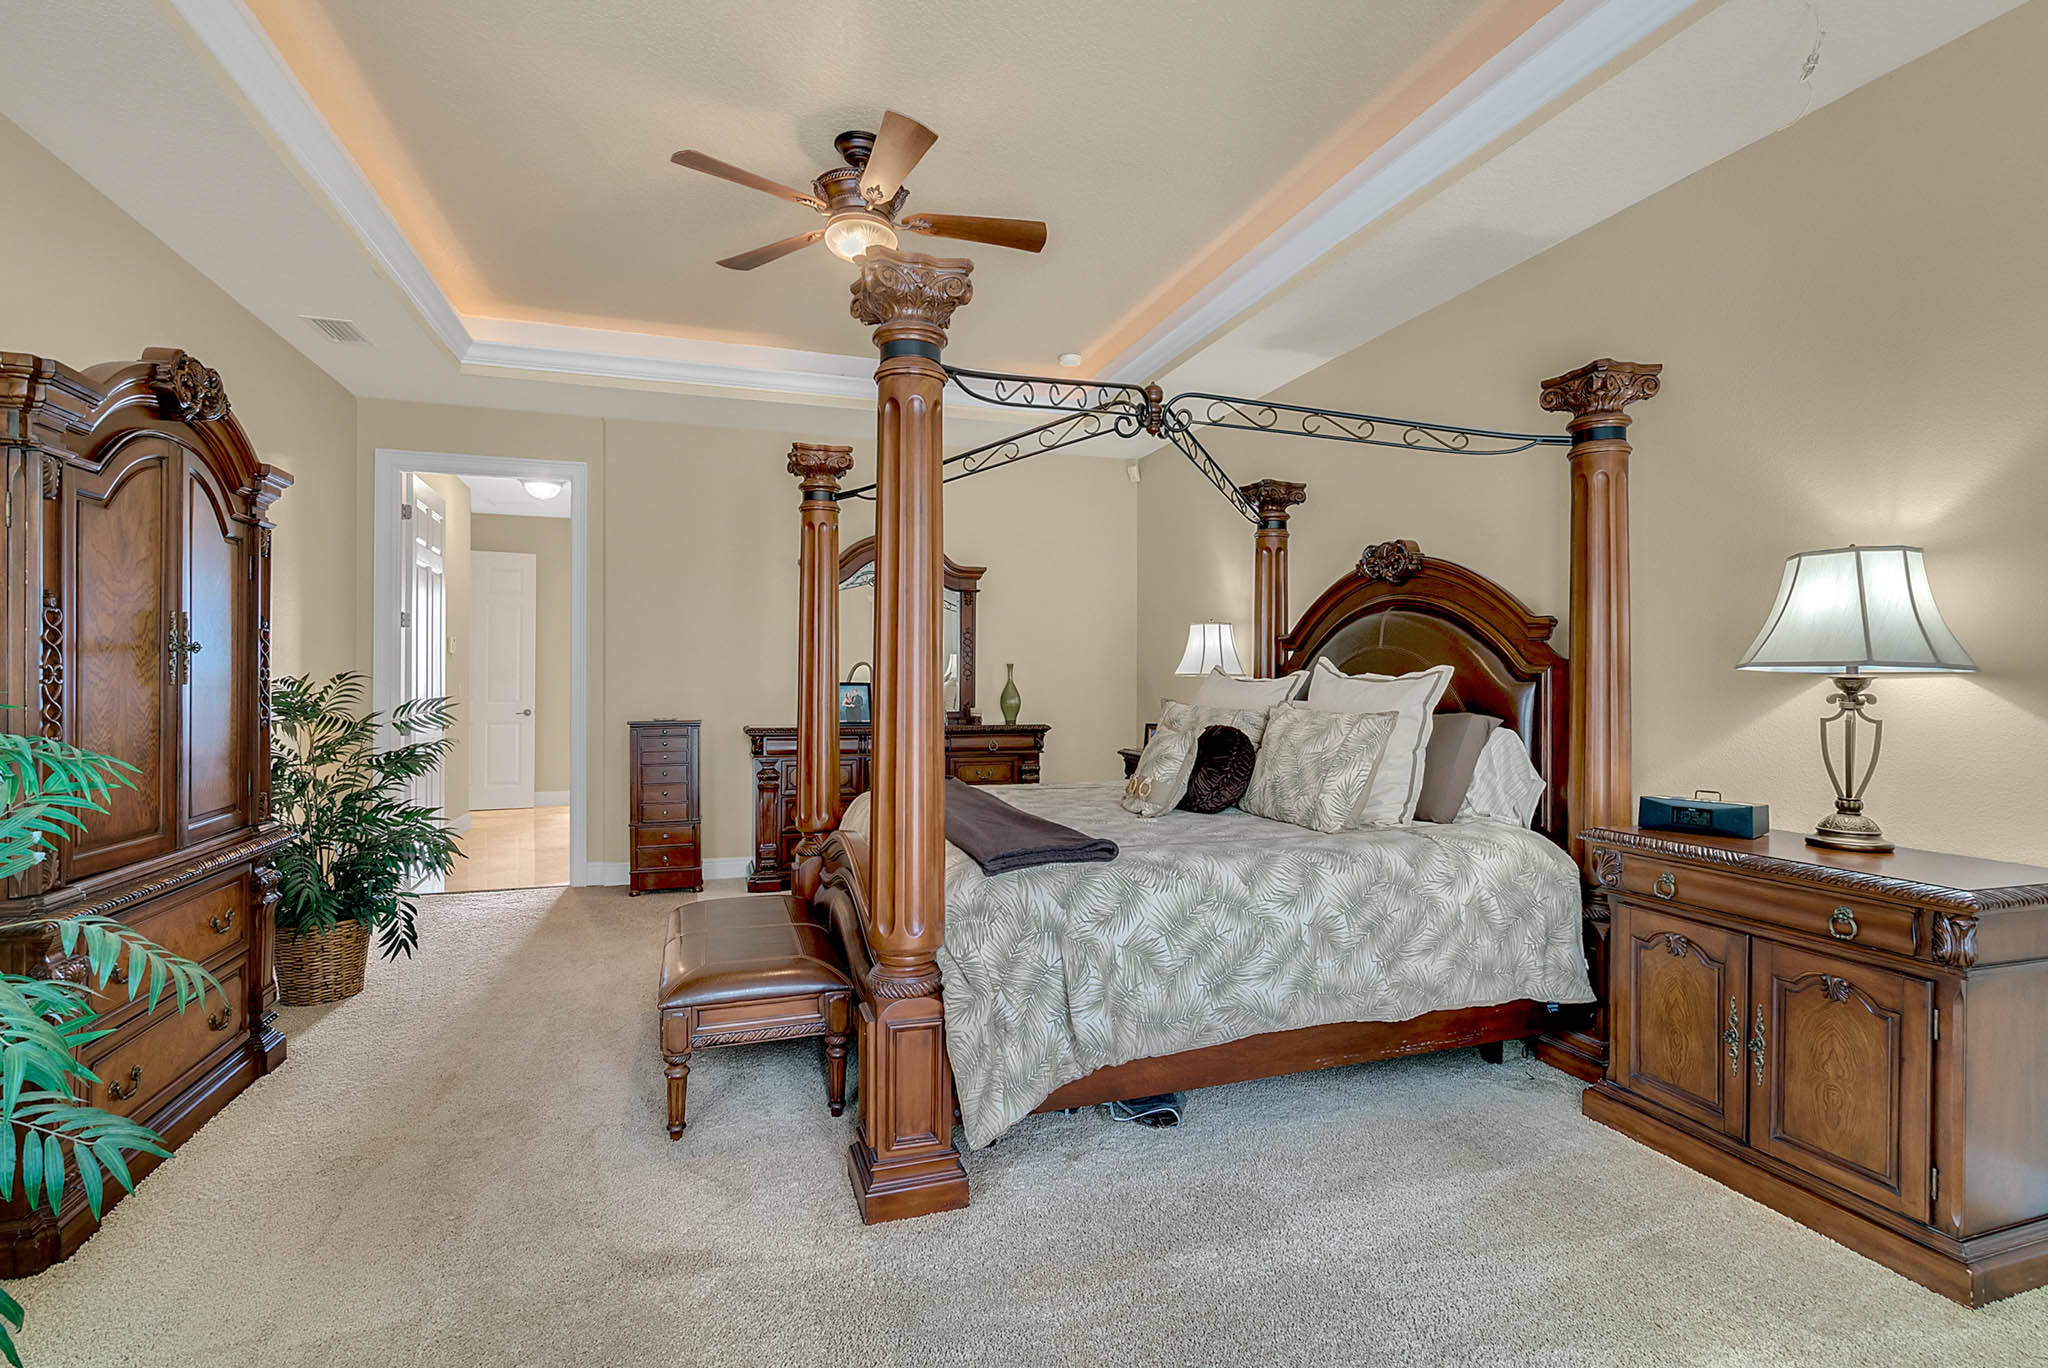 7919-Florida-Boys-Ranch-Rd--Groveland--FL-34736----21---Master-Bedroom.jpg